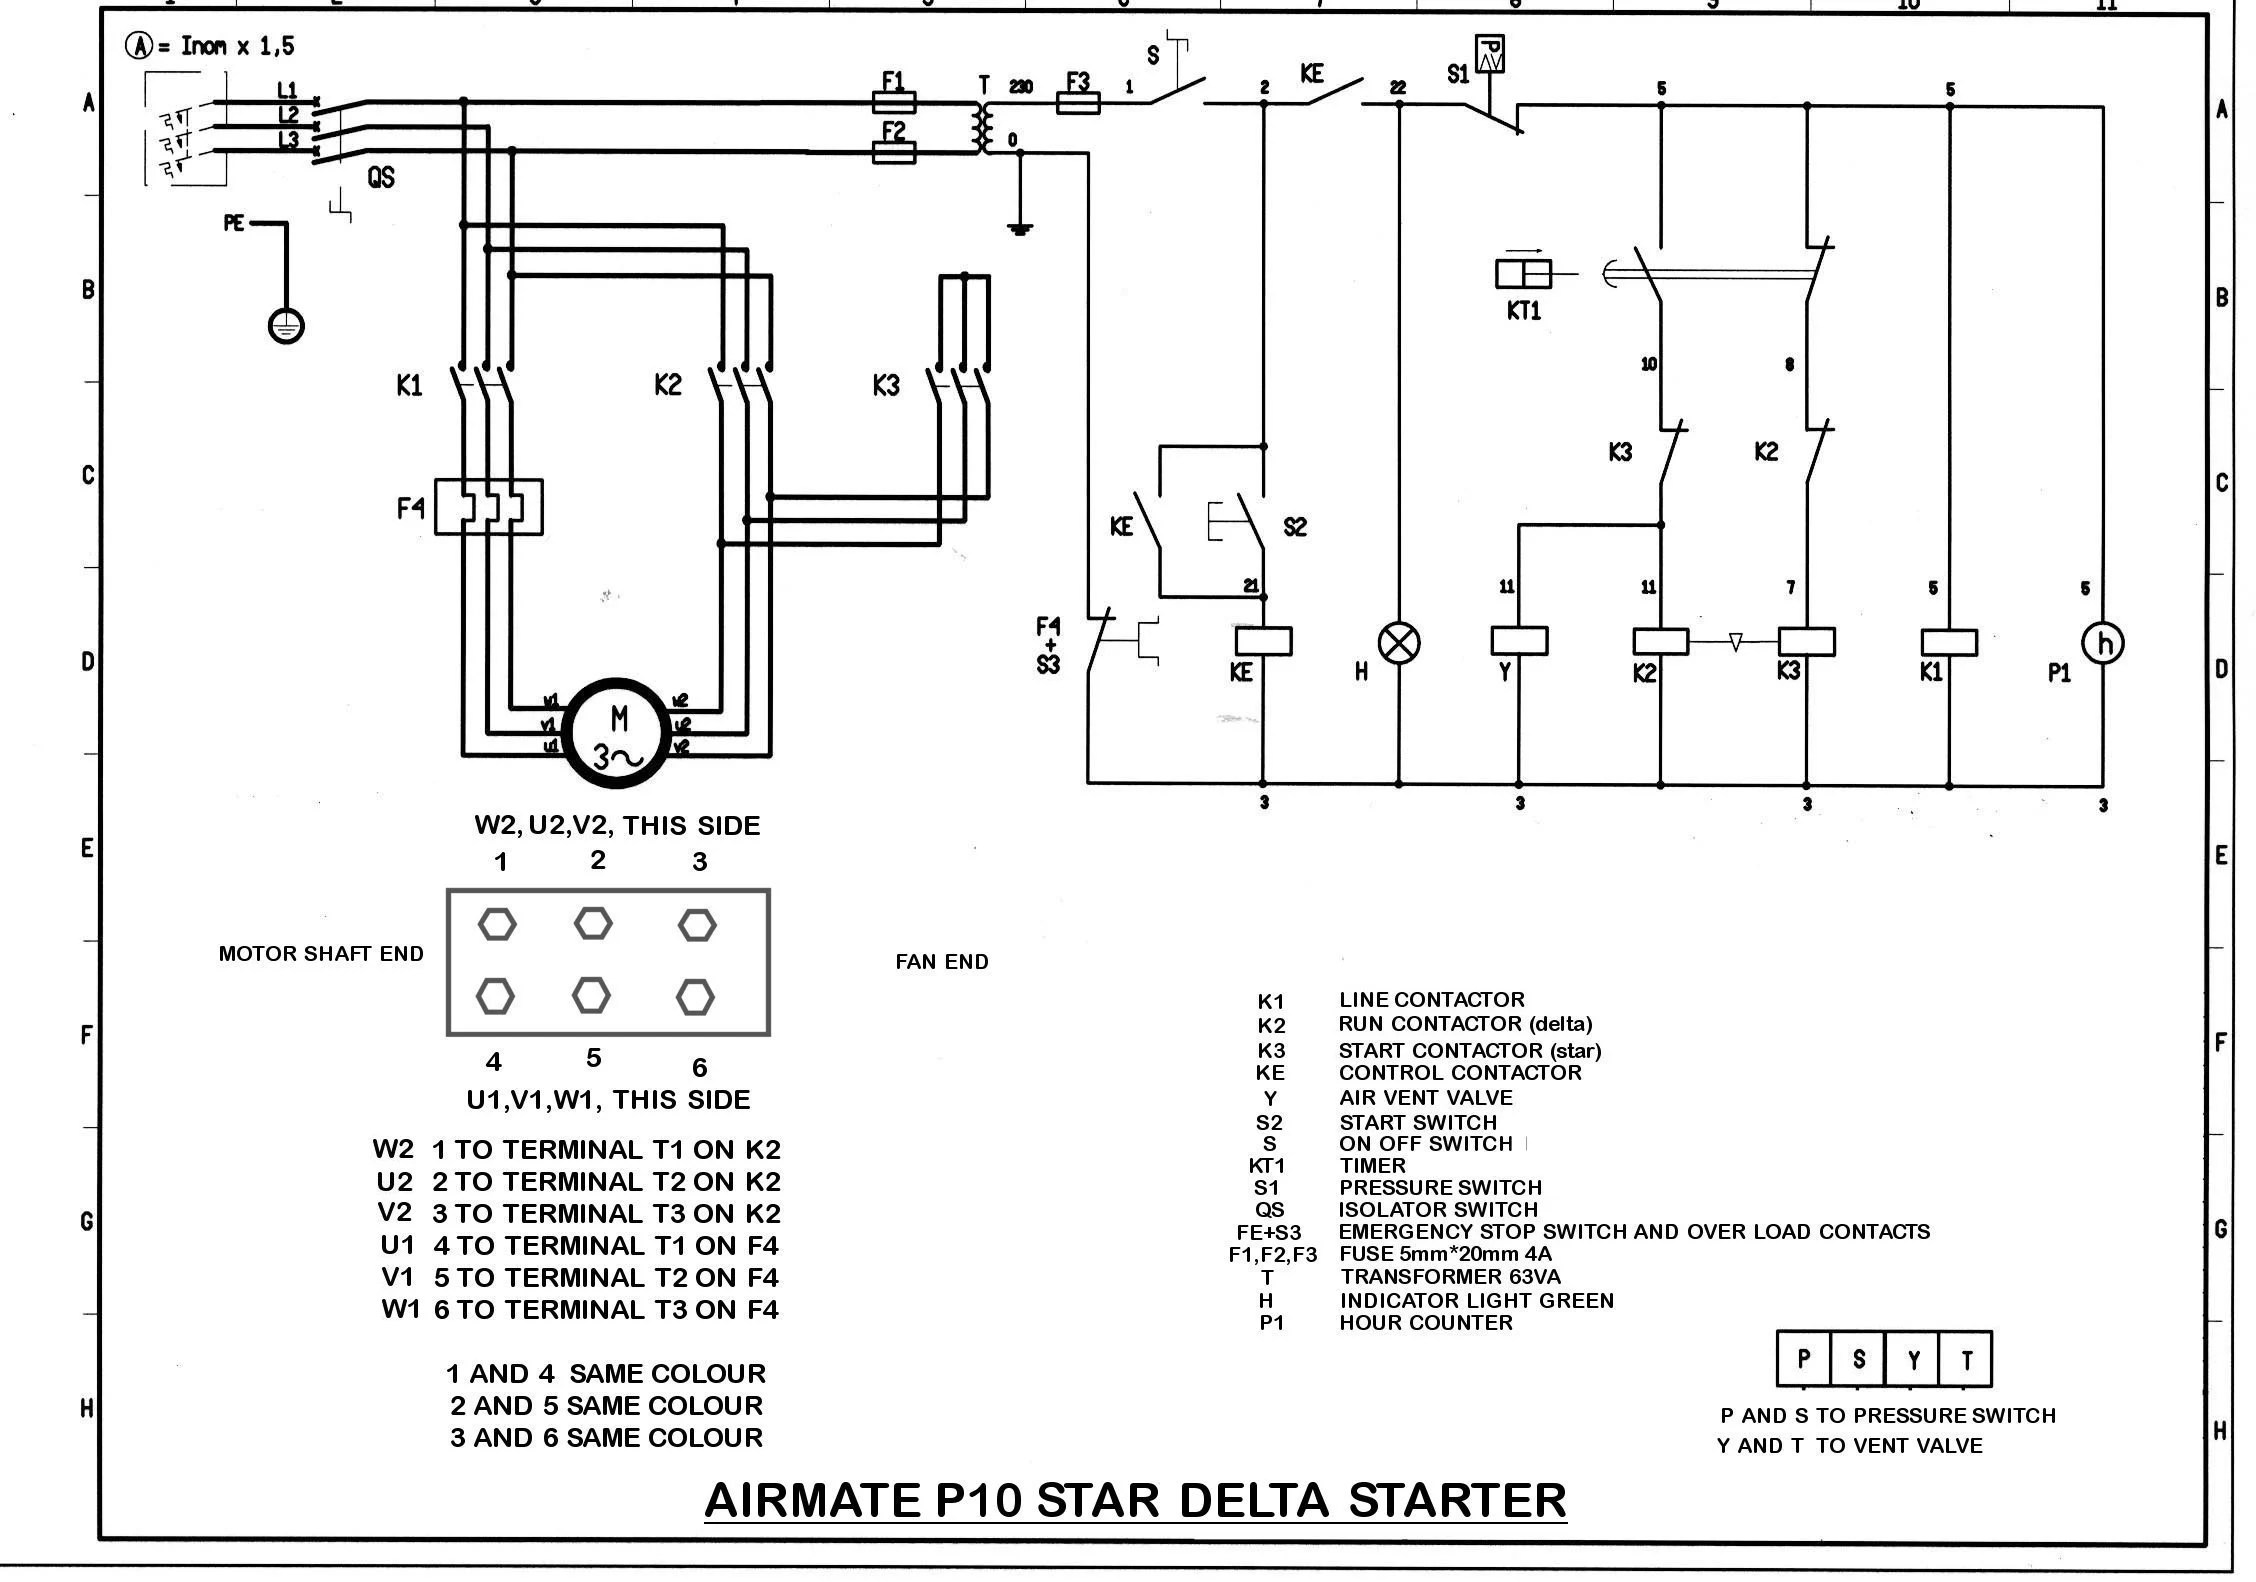 Airmate_P10_wiring embraco compressor wiring create flow chart free supco 3 in 1 wiring diagram at aneh.co